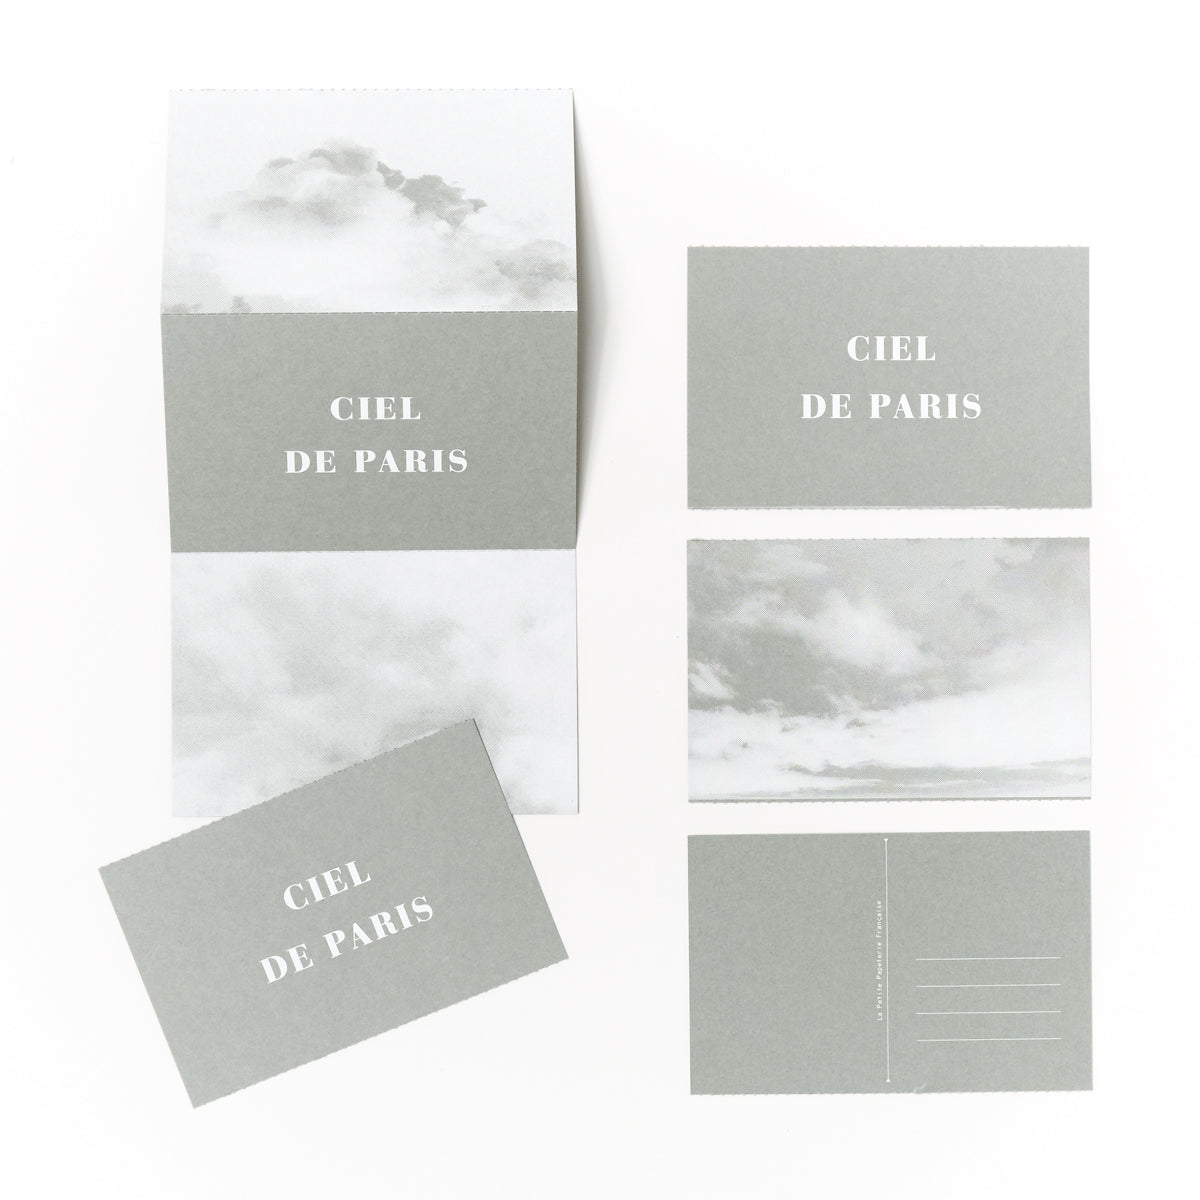 Ciel de Paris